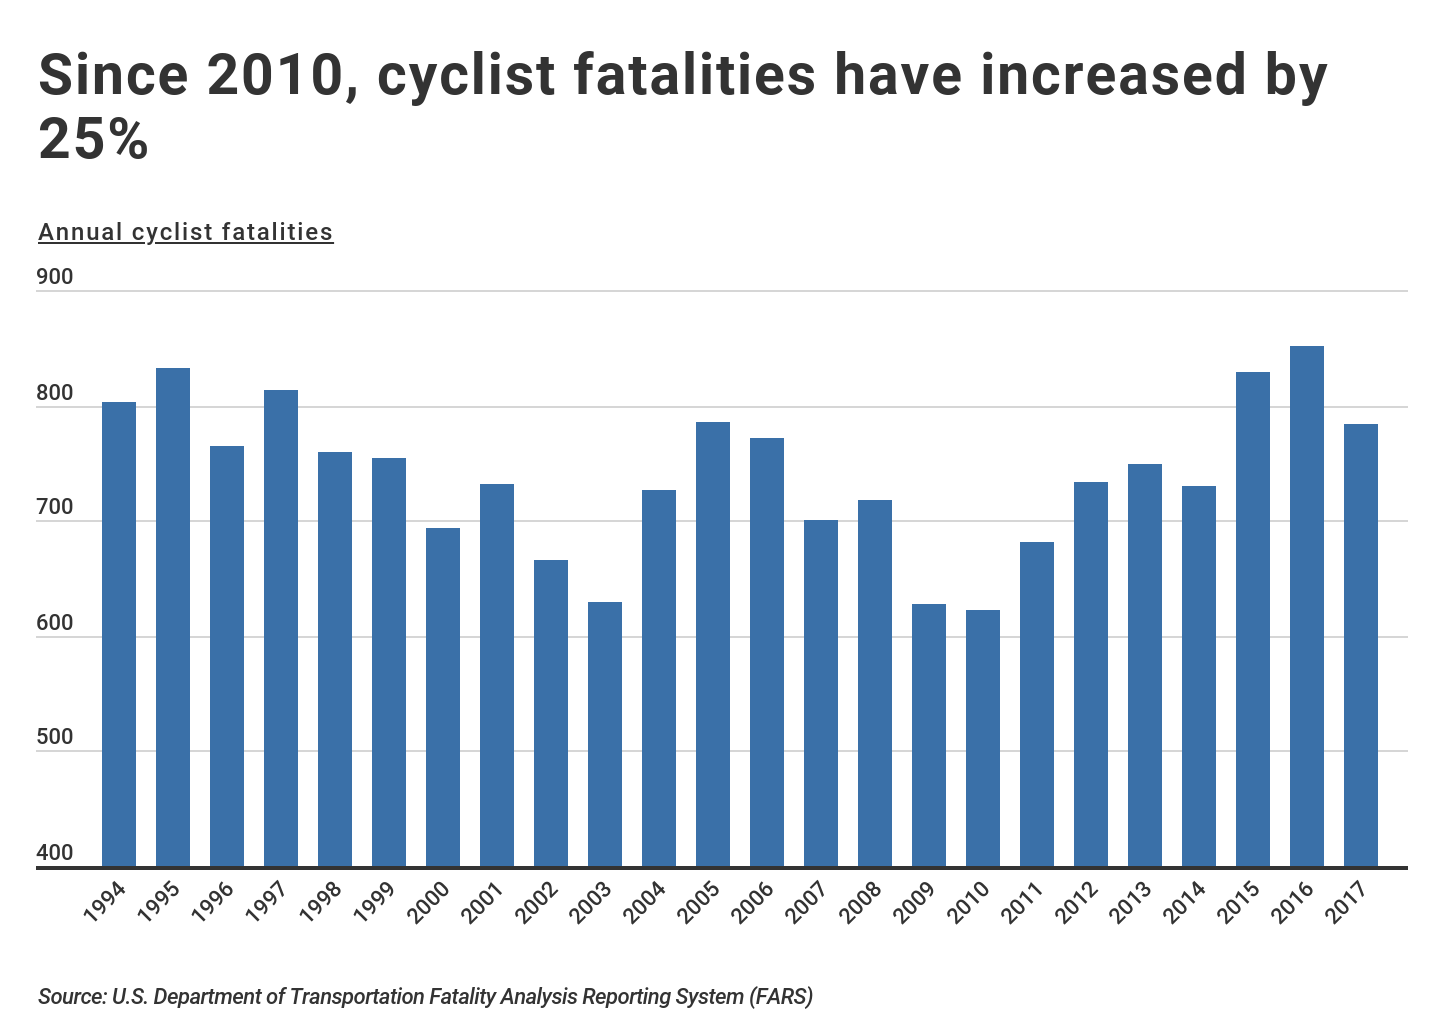 Cyclist fatalities increasing since 2010